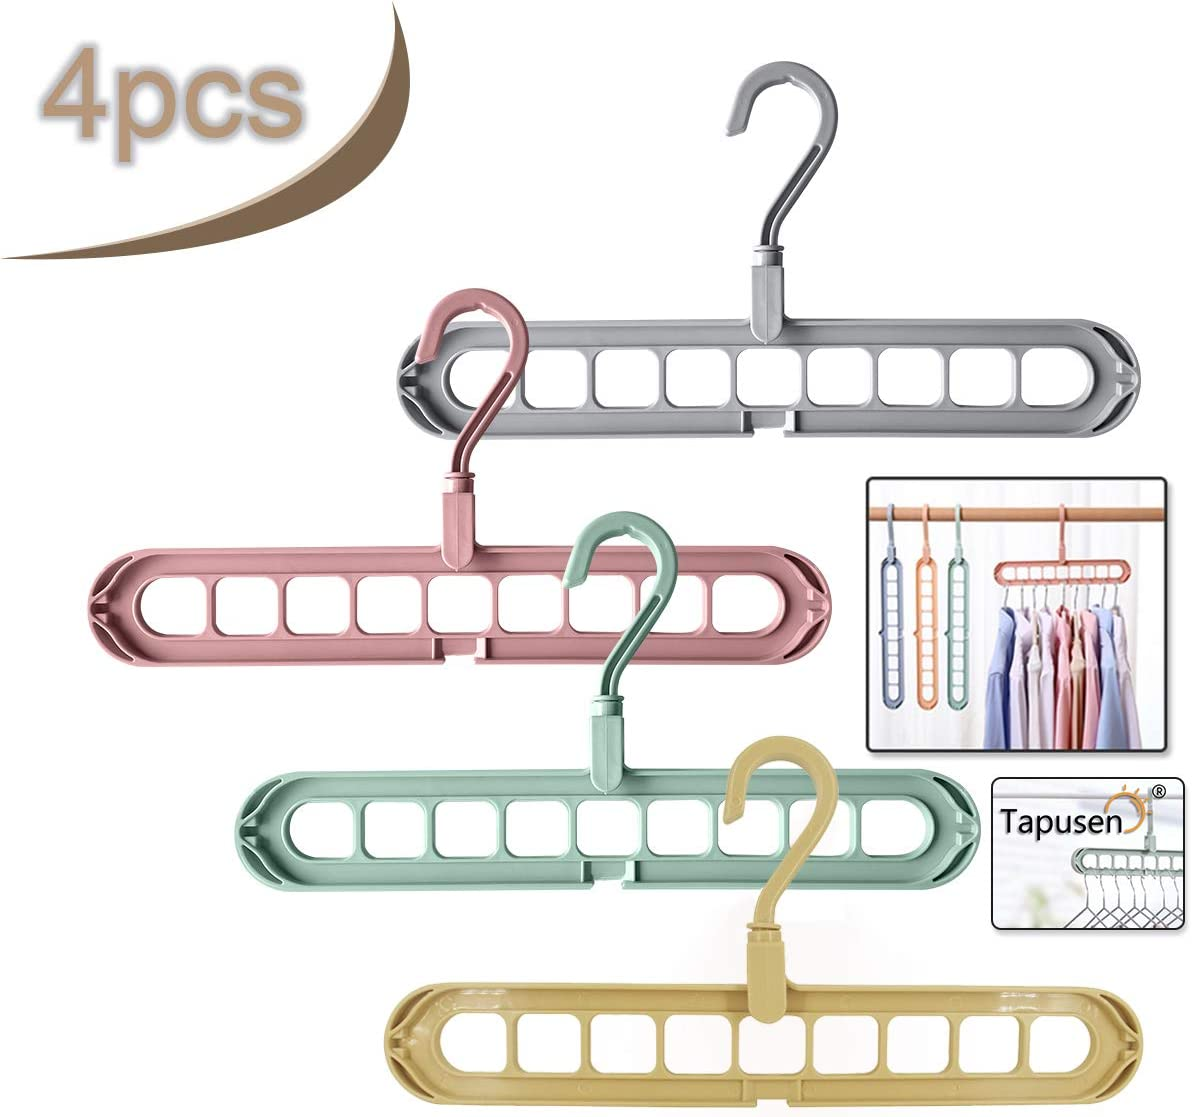 Tapusen Magic Hanger - Perchas Que ahorran Espacio Percha en ...